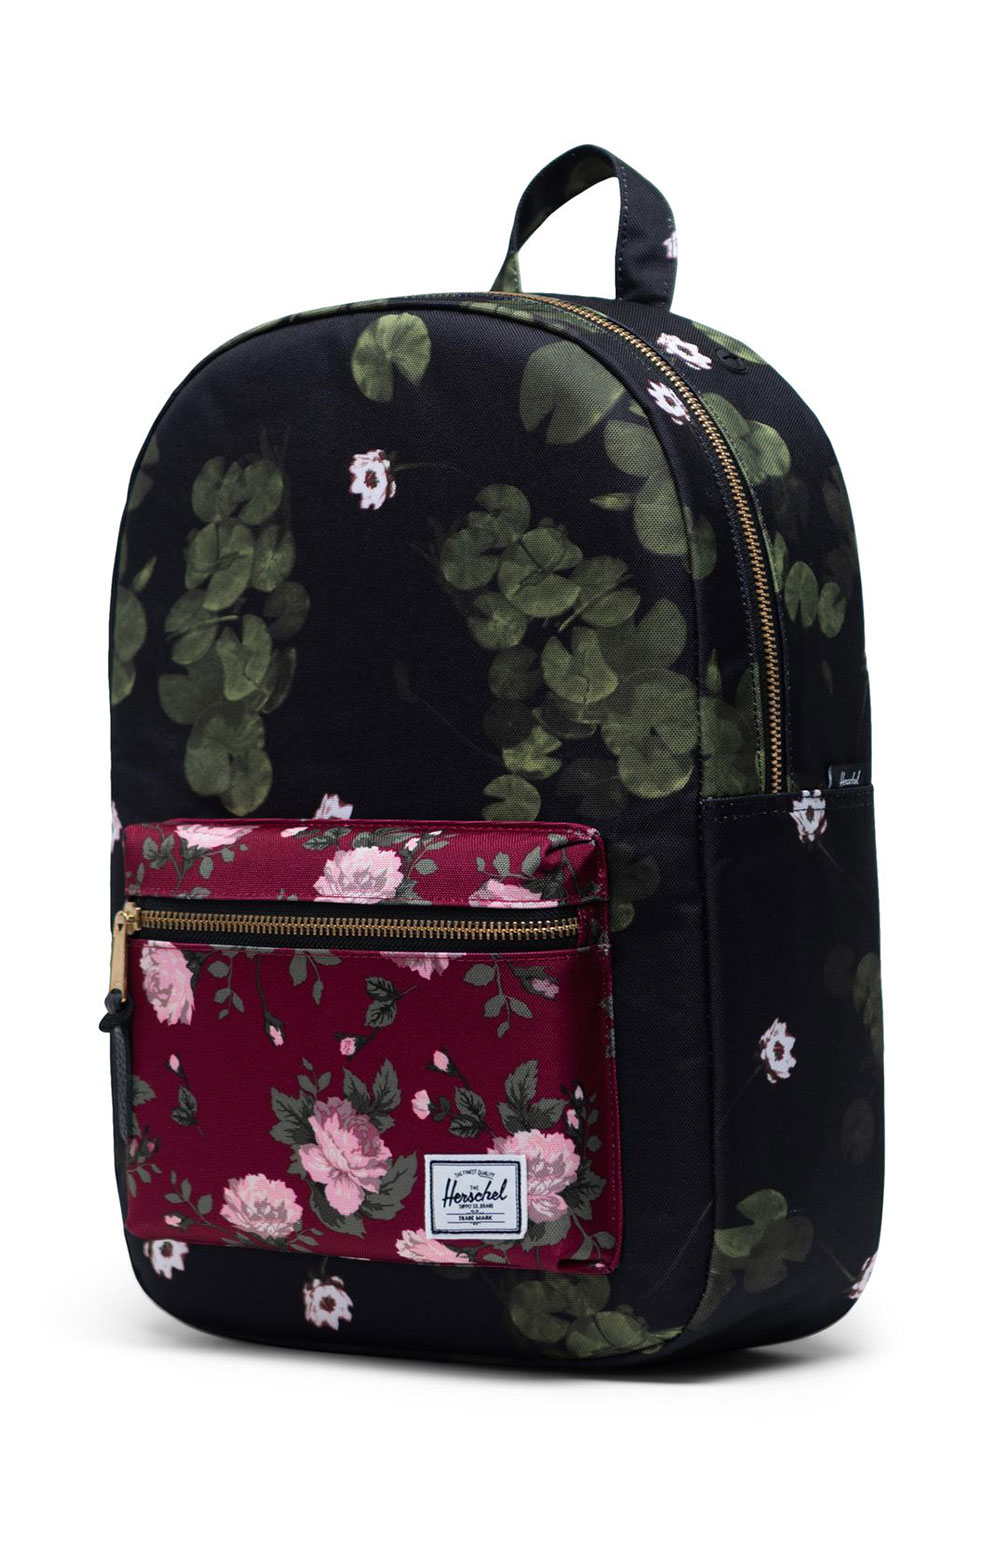 Settlement Mid Backpack - Fine China Floral  3